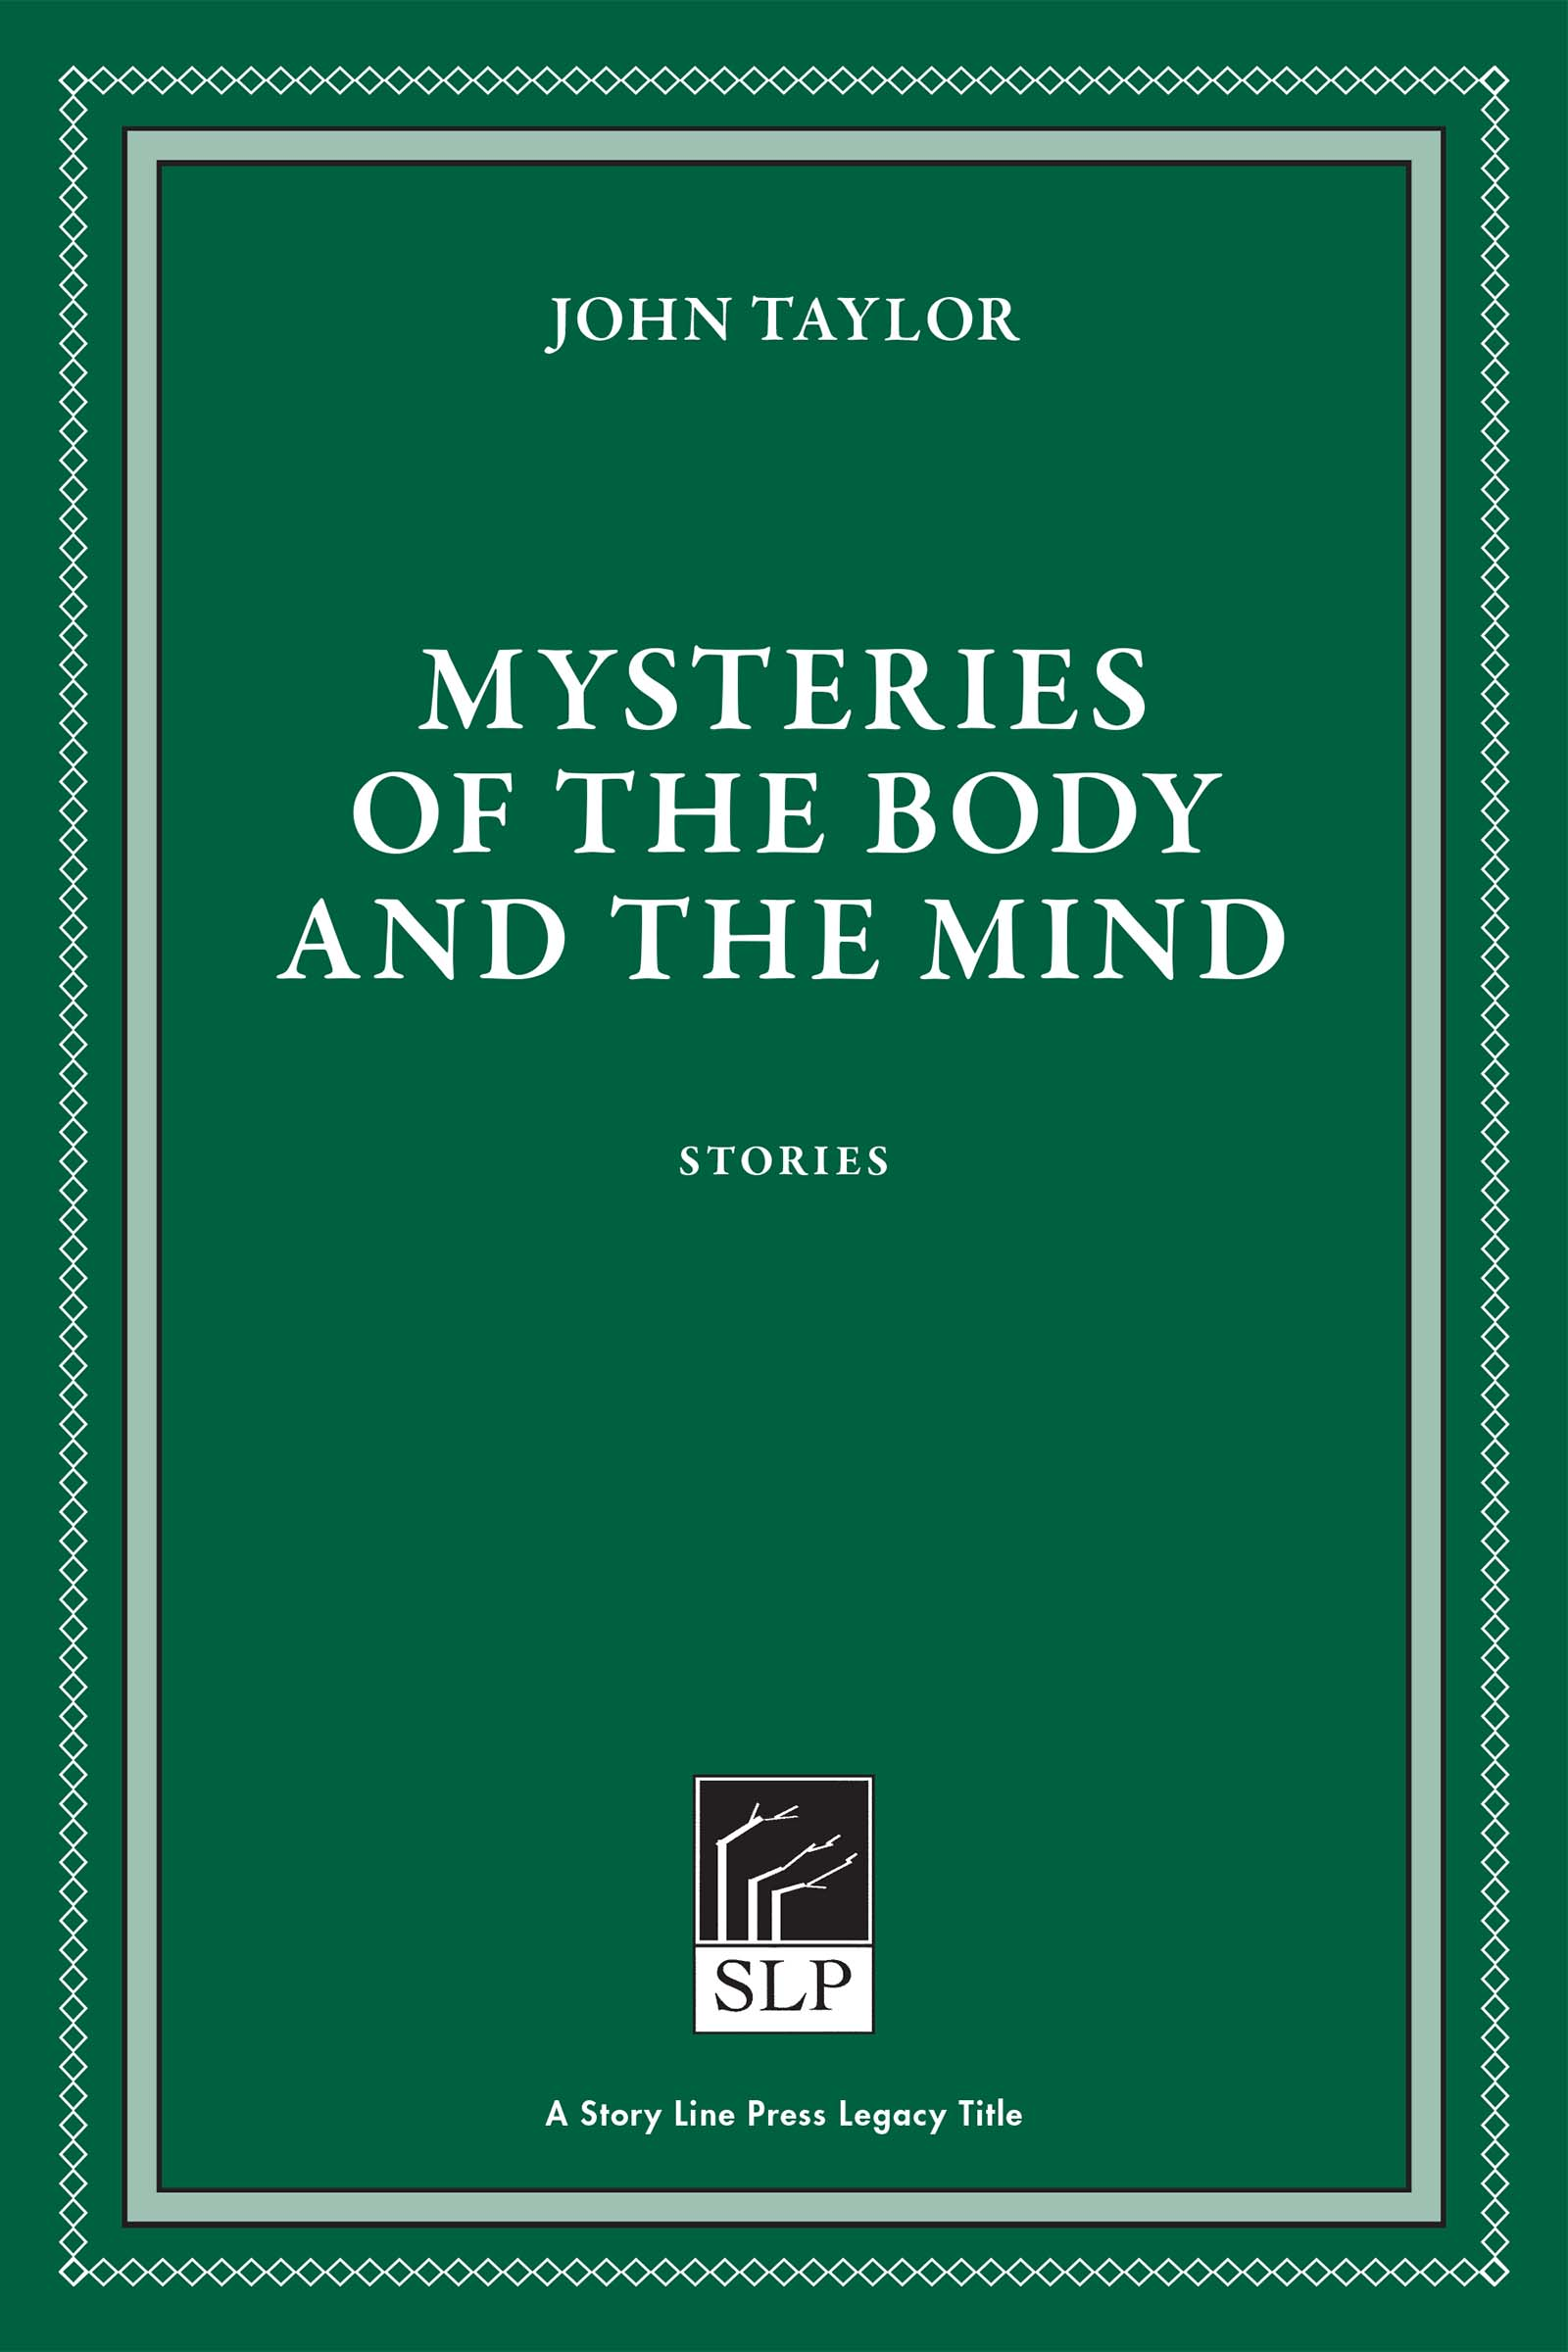 Story Line Press legacy tittle, John Taylor Mysteries of the Body and the Mind Stories, white script text against emerald green background.